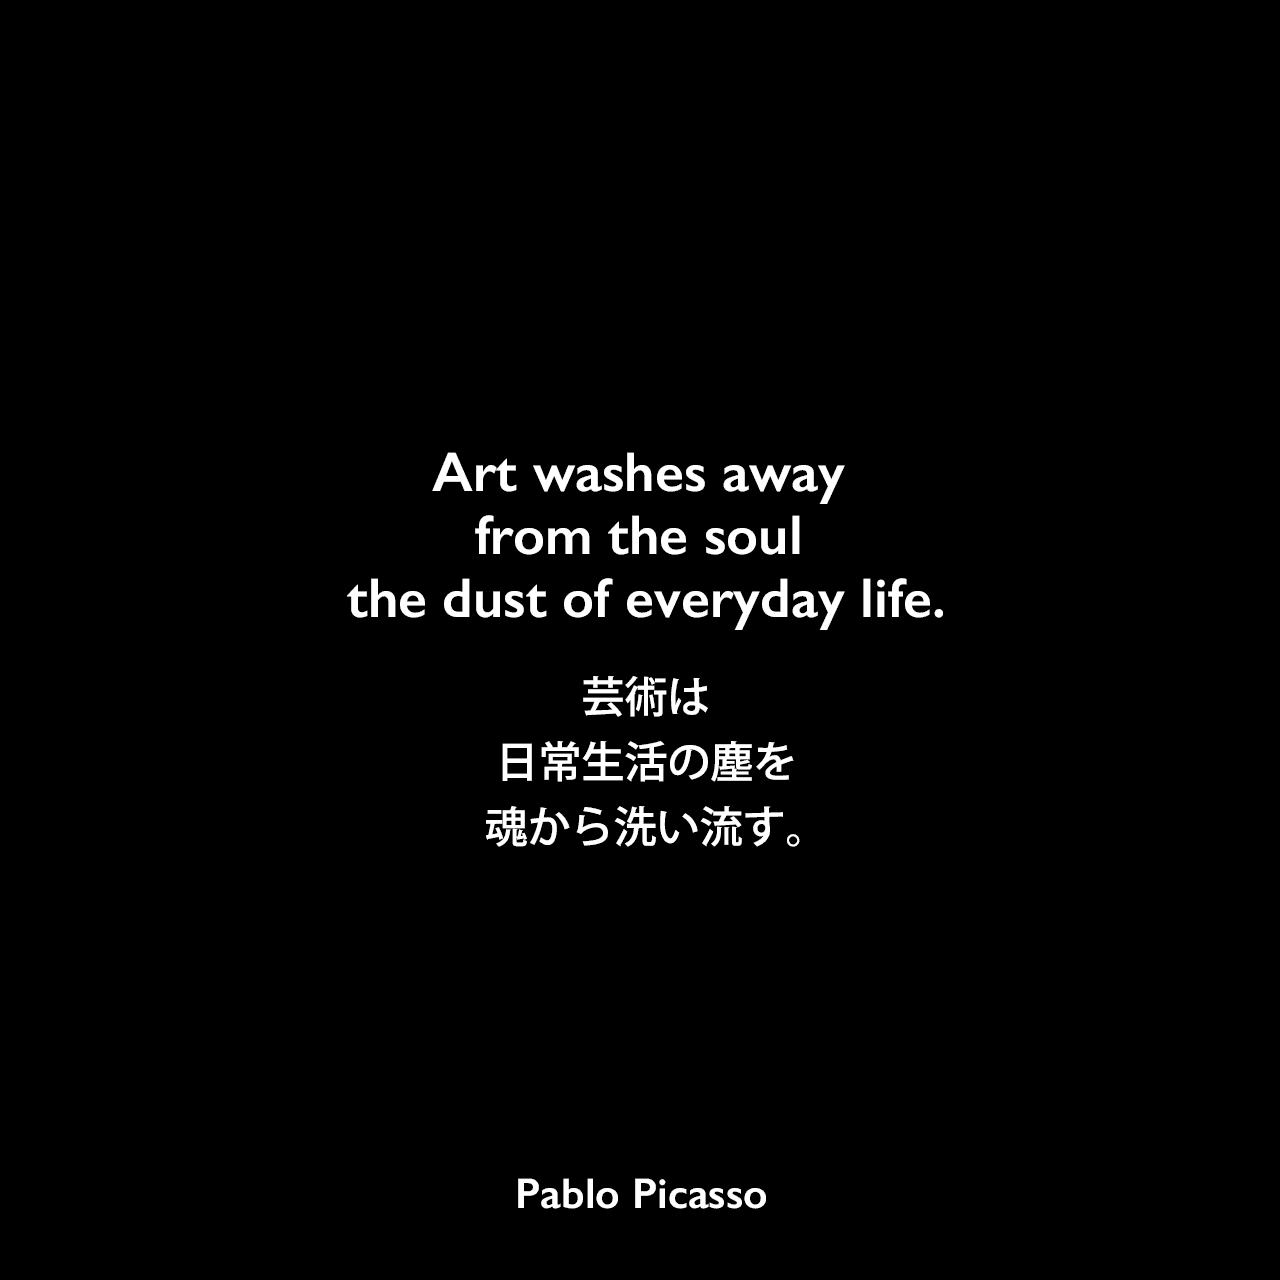 Art washes away from the soul the dust of everyday life.芸術は日常生活の塵を魂から洗い流す。- 1964年のLIFEマガジンよりPablo Picasso